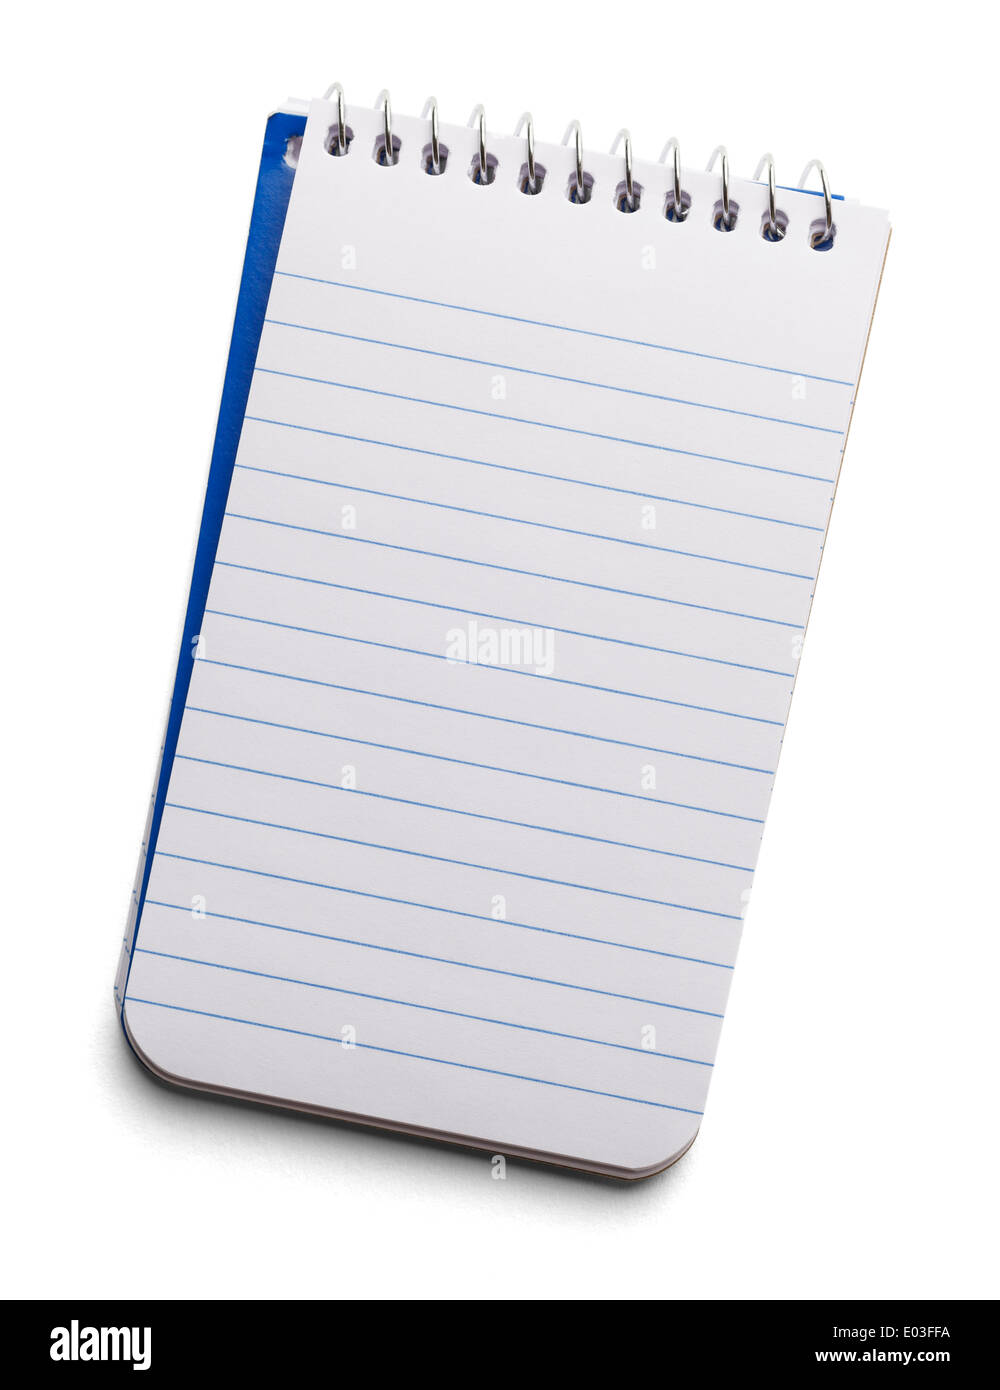 White Lined Spiral Note Pad with Copy Space Isolated on a White Background. - Stock Image